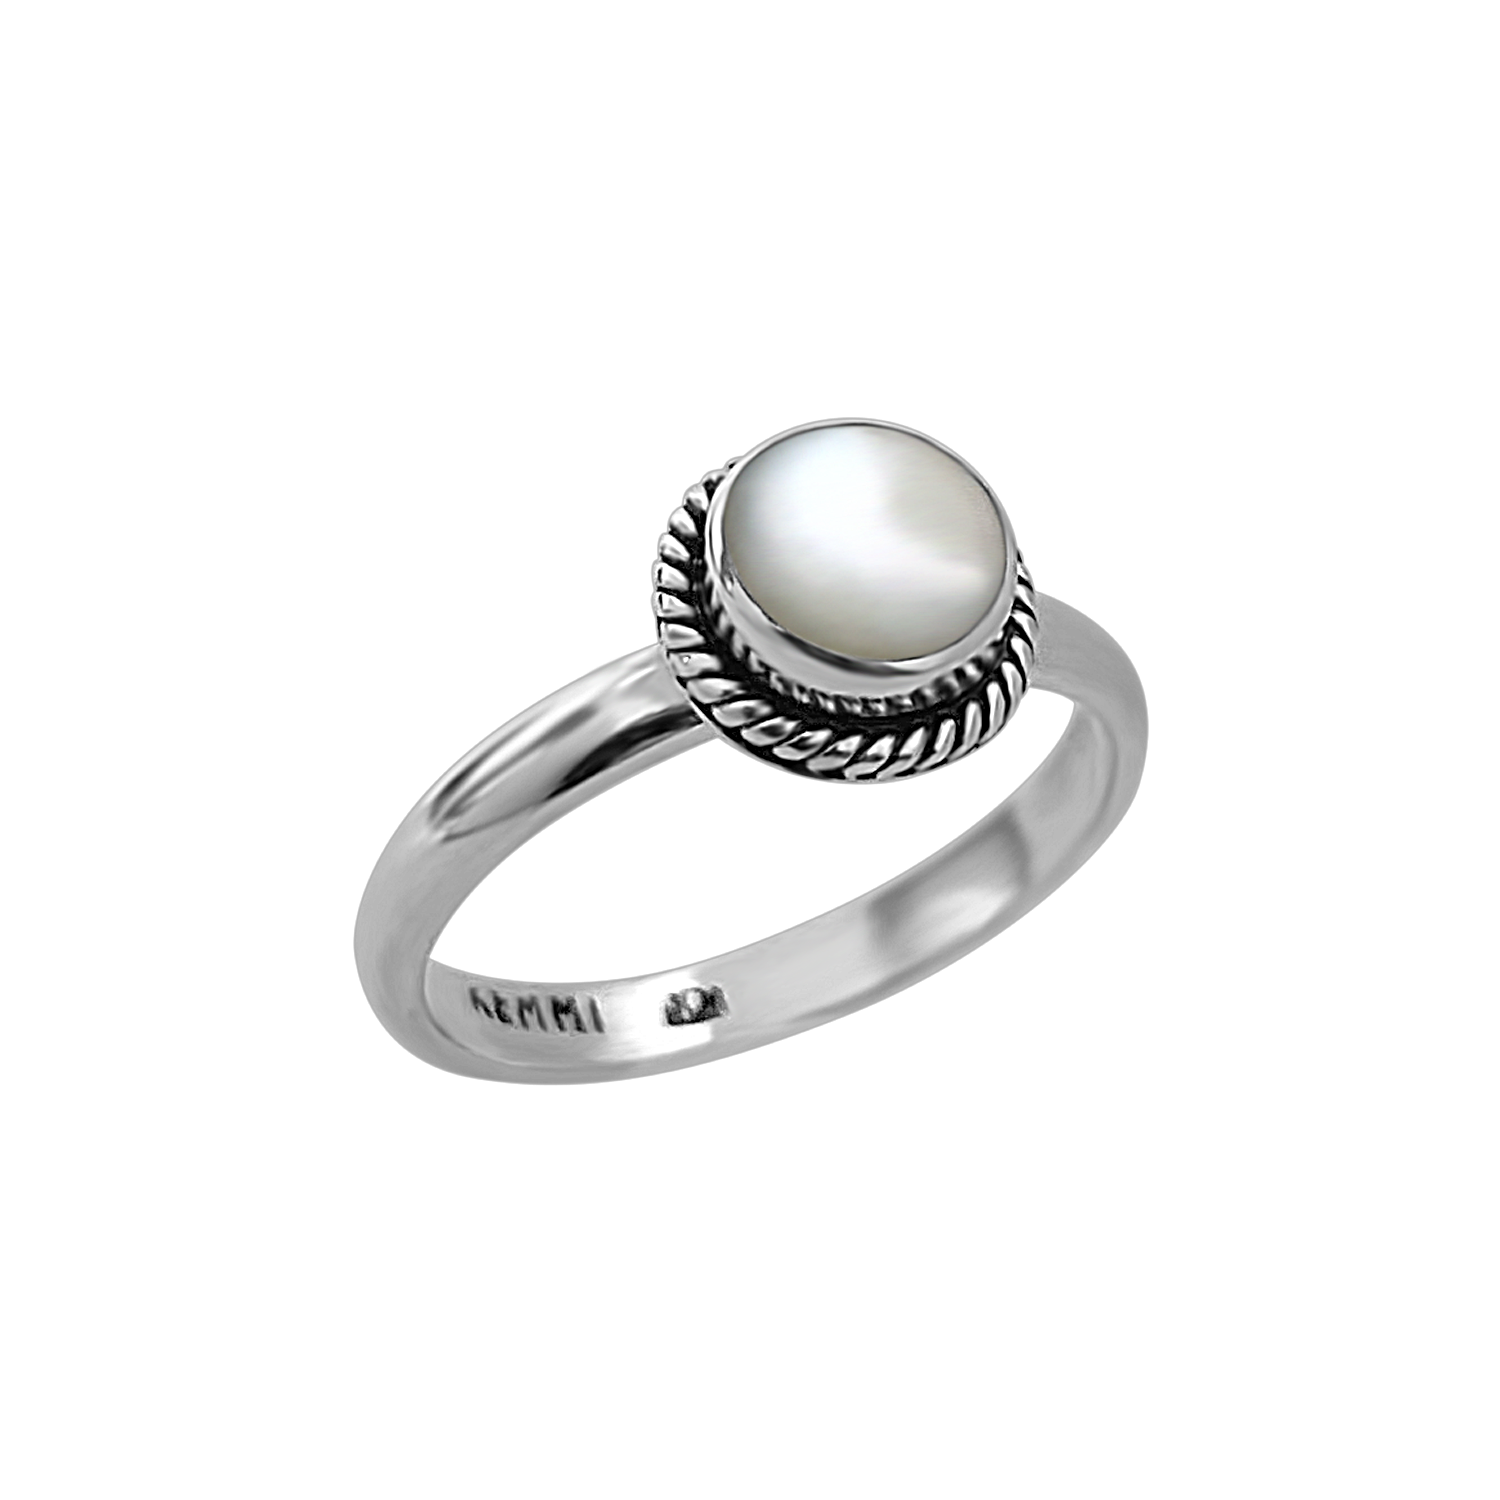 sterling silver band mother of pearl ring kemmi jewelry bohemian classic style